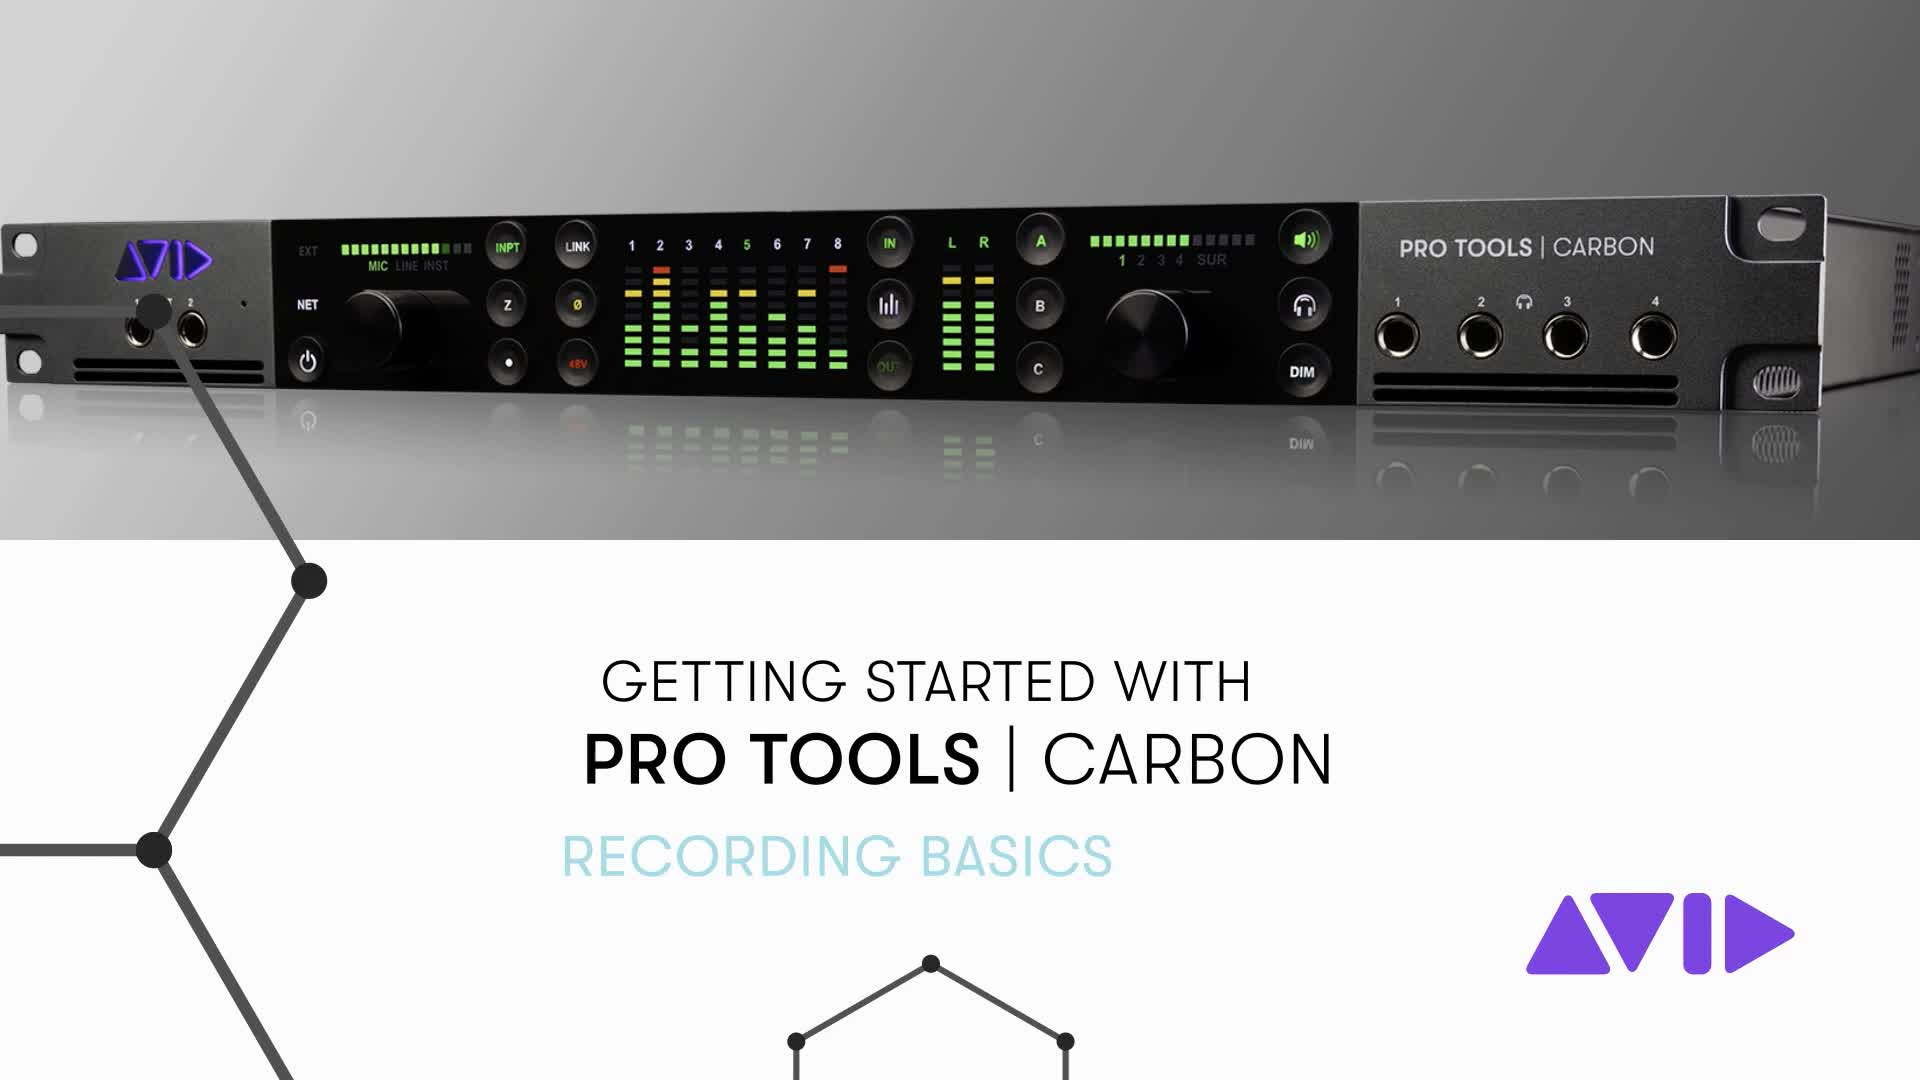 08 Pro Tools Carbon Getting Started – Recording Basics